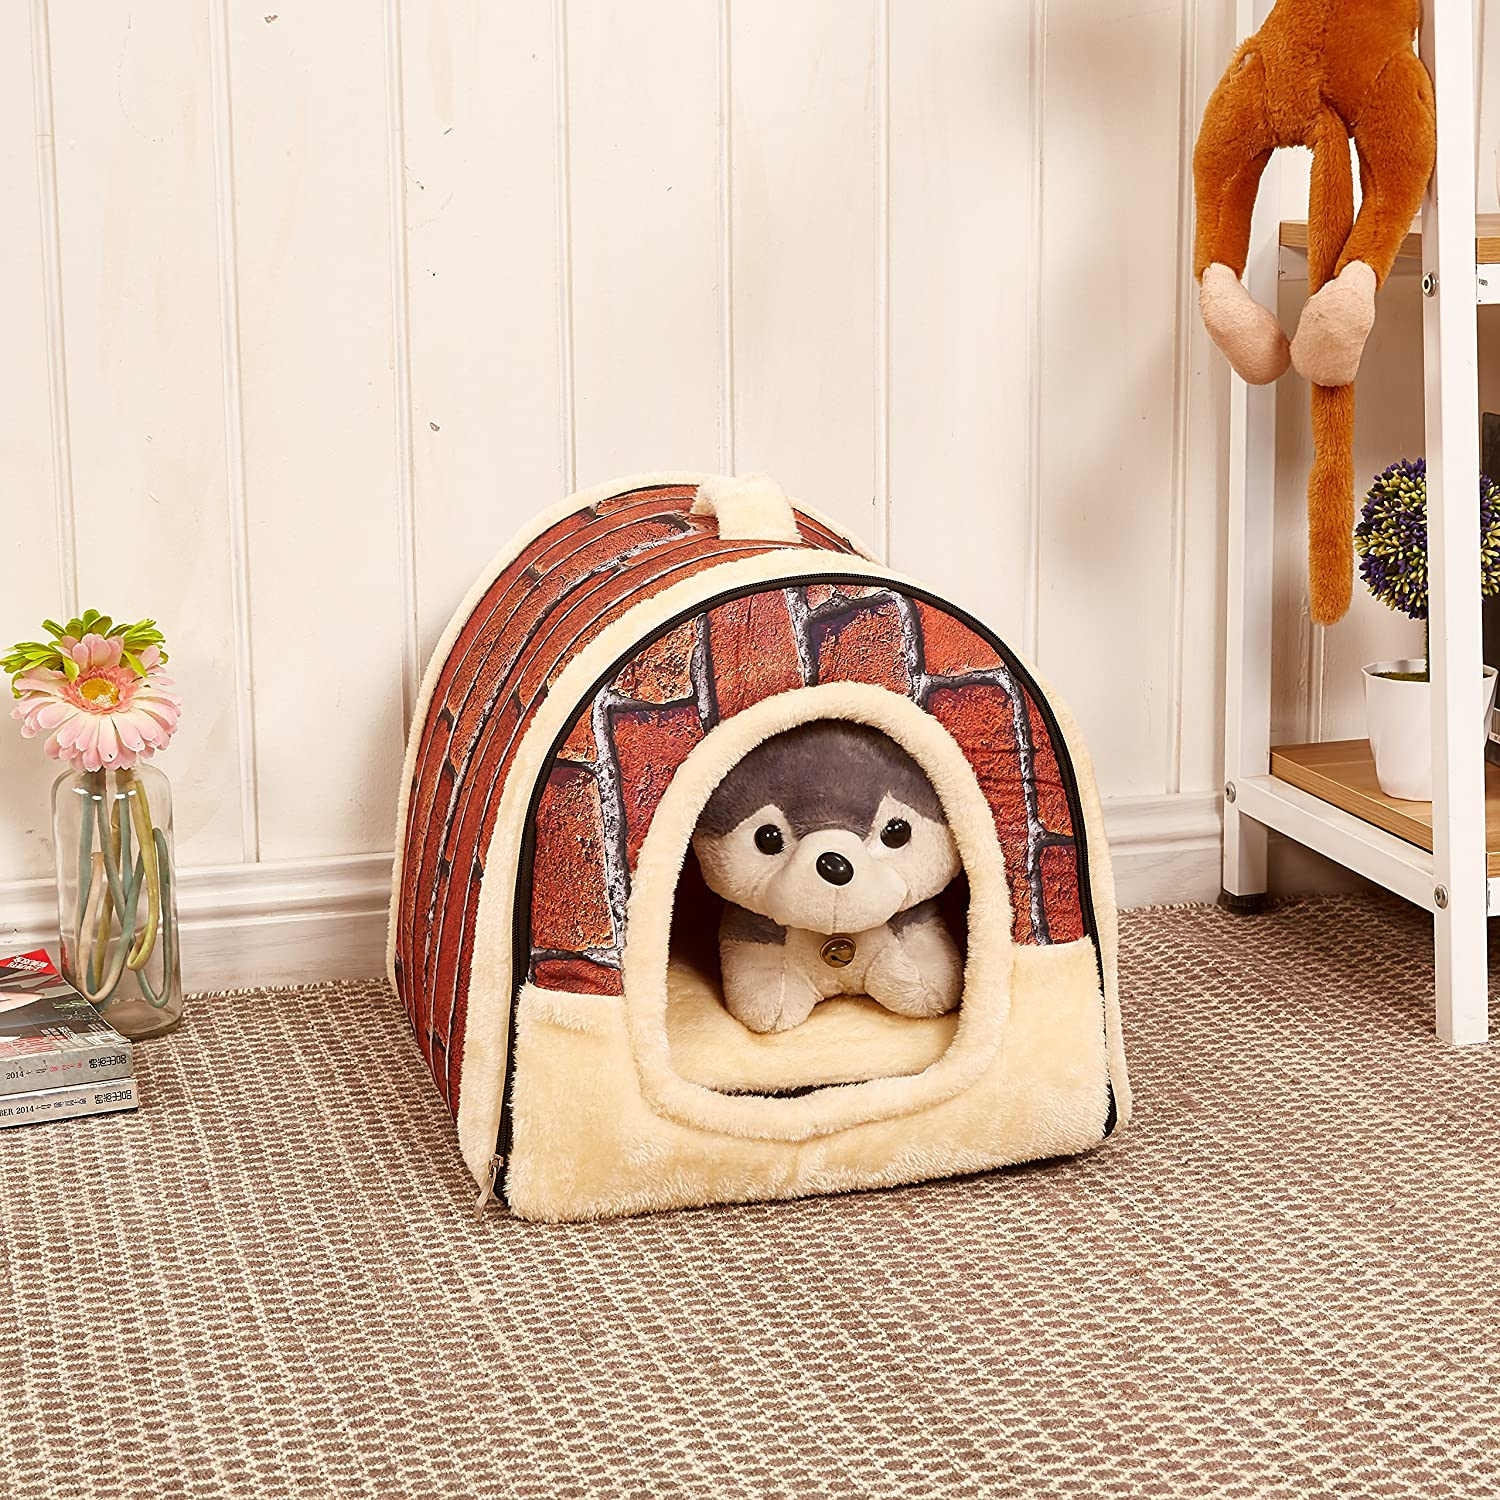 Amazon.com: ANPI 2 en 1 casa de perro Gato Igloo, plegable ...